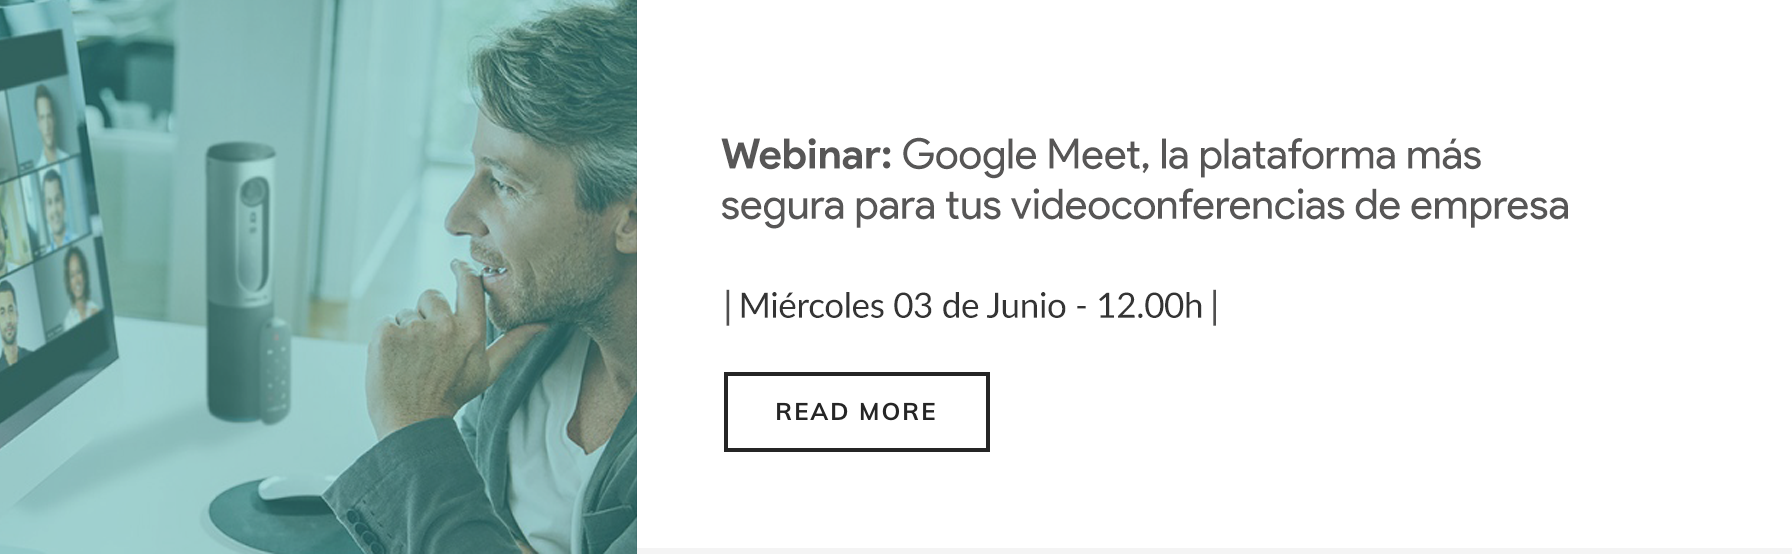 eventos-web-webinar-google-meet